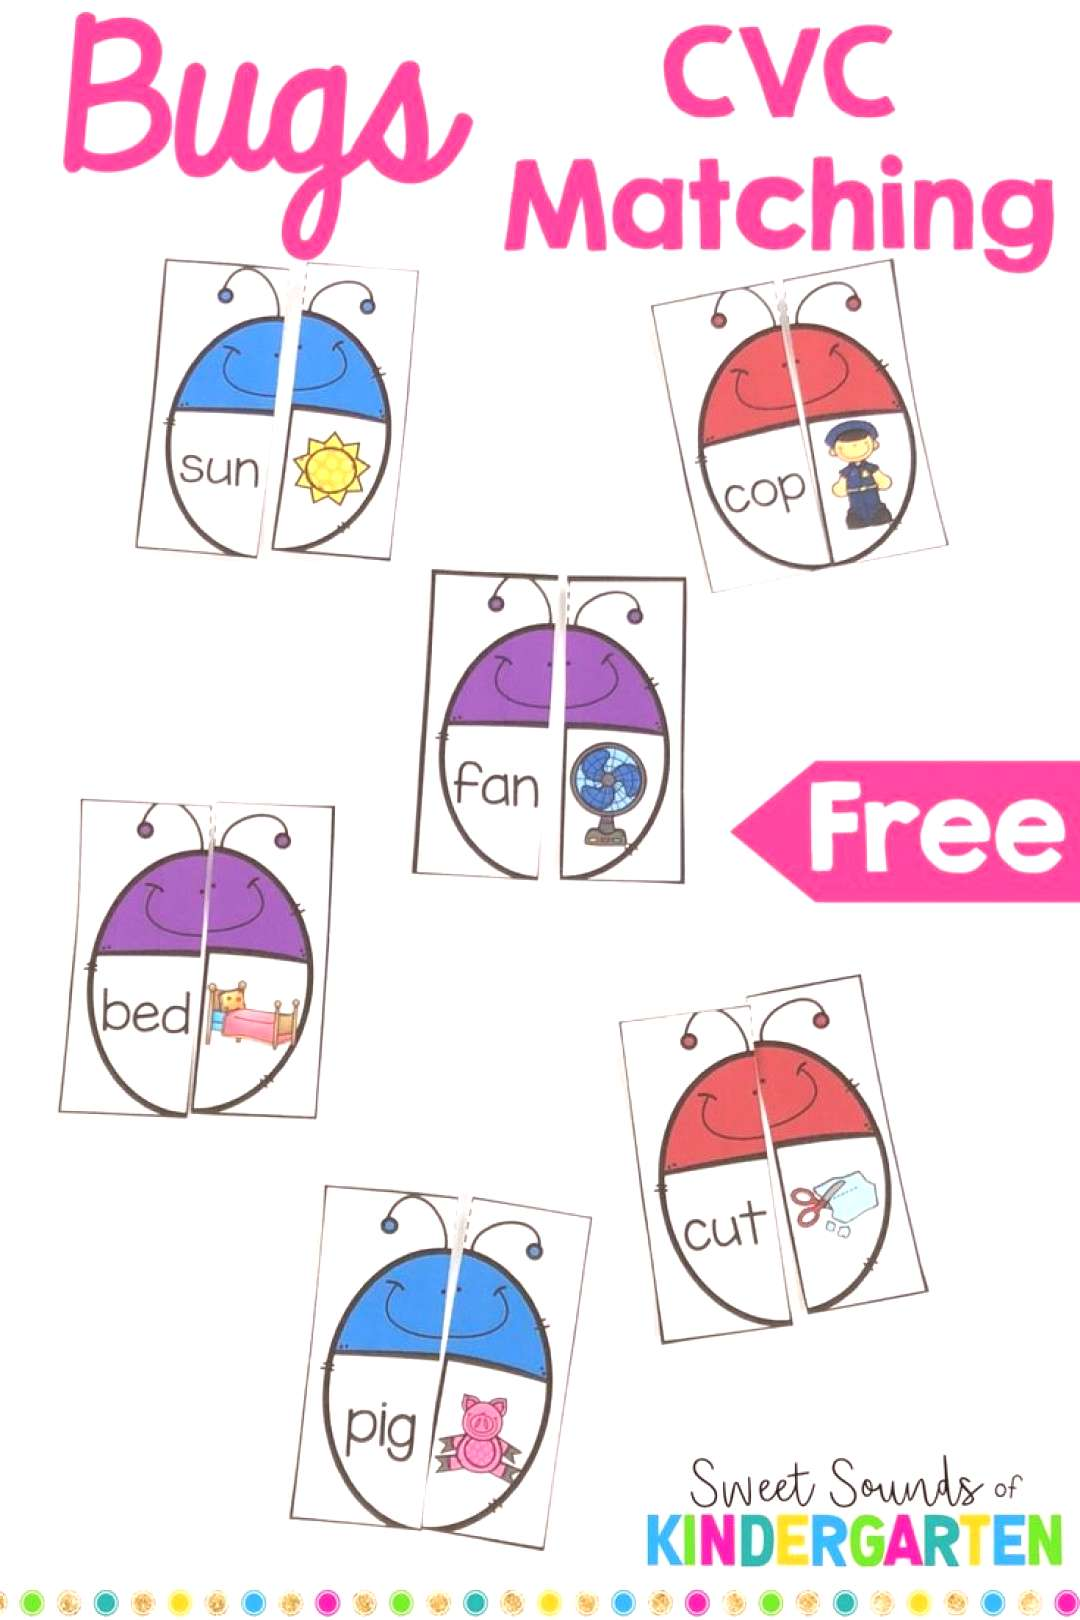 CVC Bugs Matching Game Looking for a new phonics activity for phonics? This game includes 48 differ